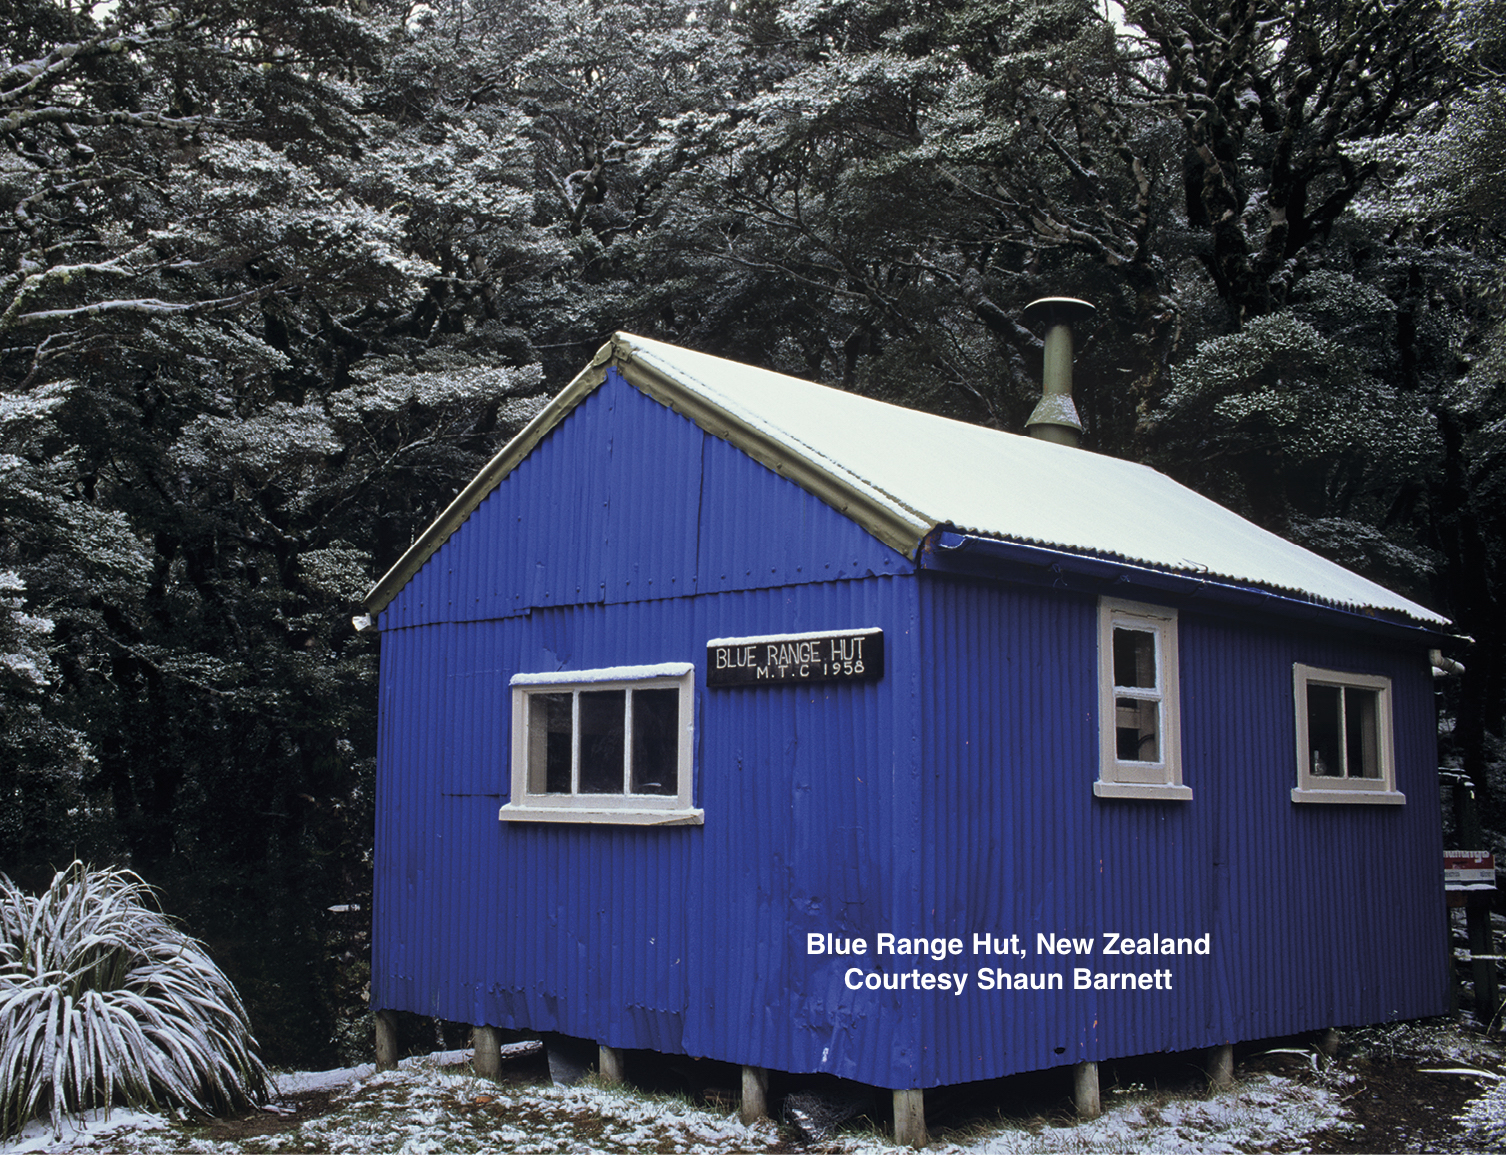 Blue Range Hut built by Masterton Tramping Club in 1958